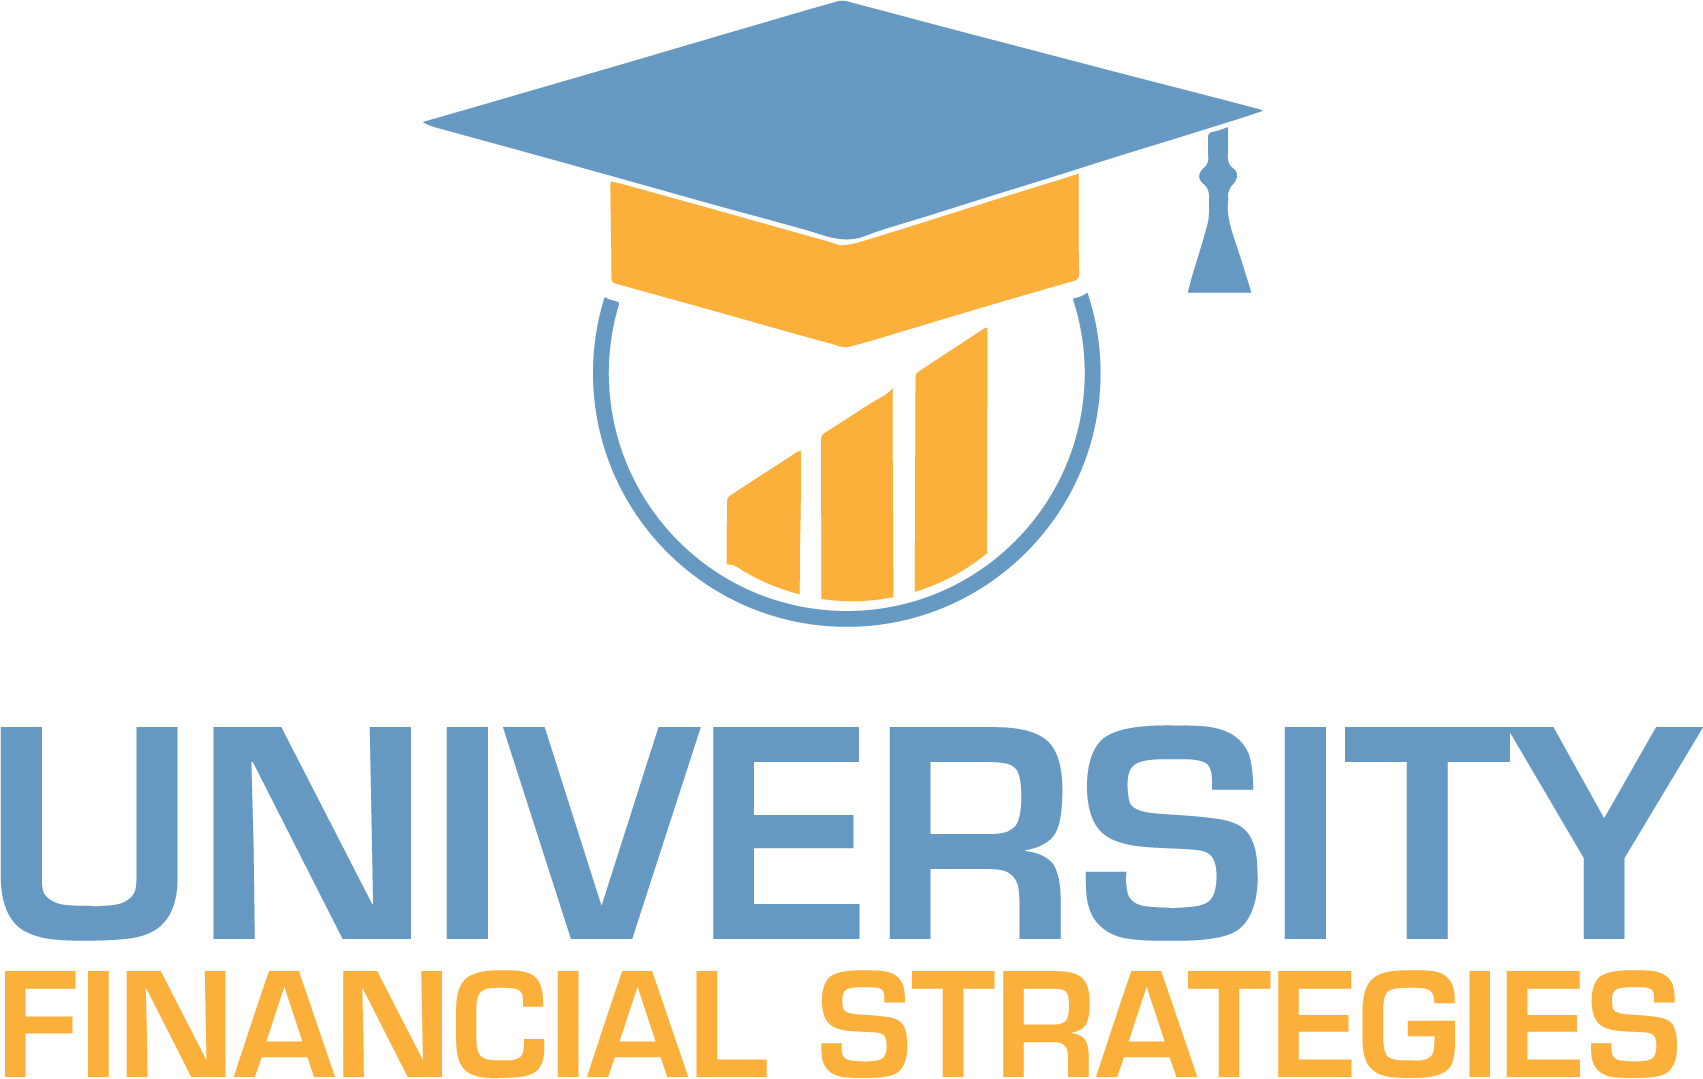 University Financial Strategies